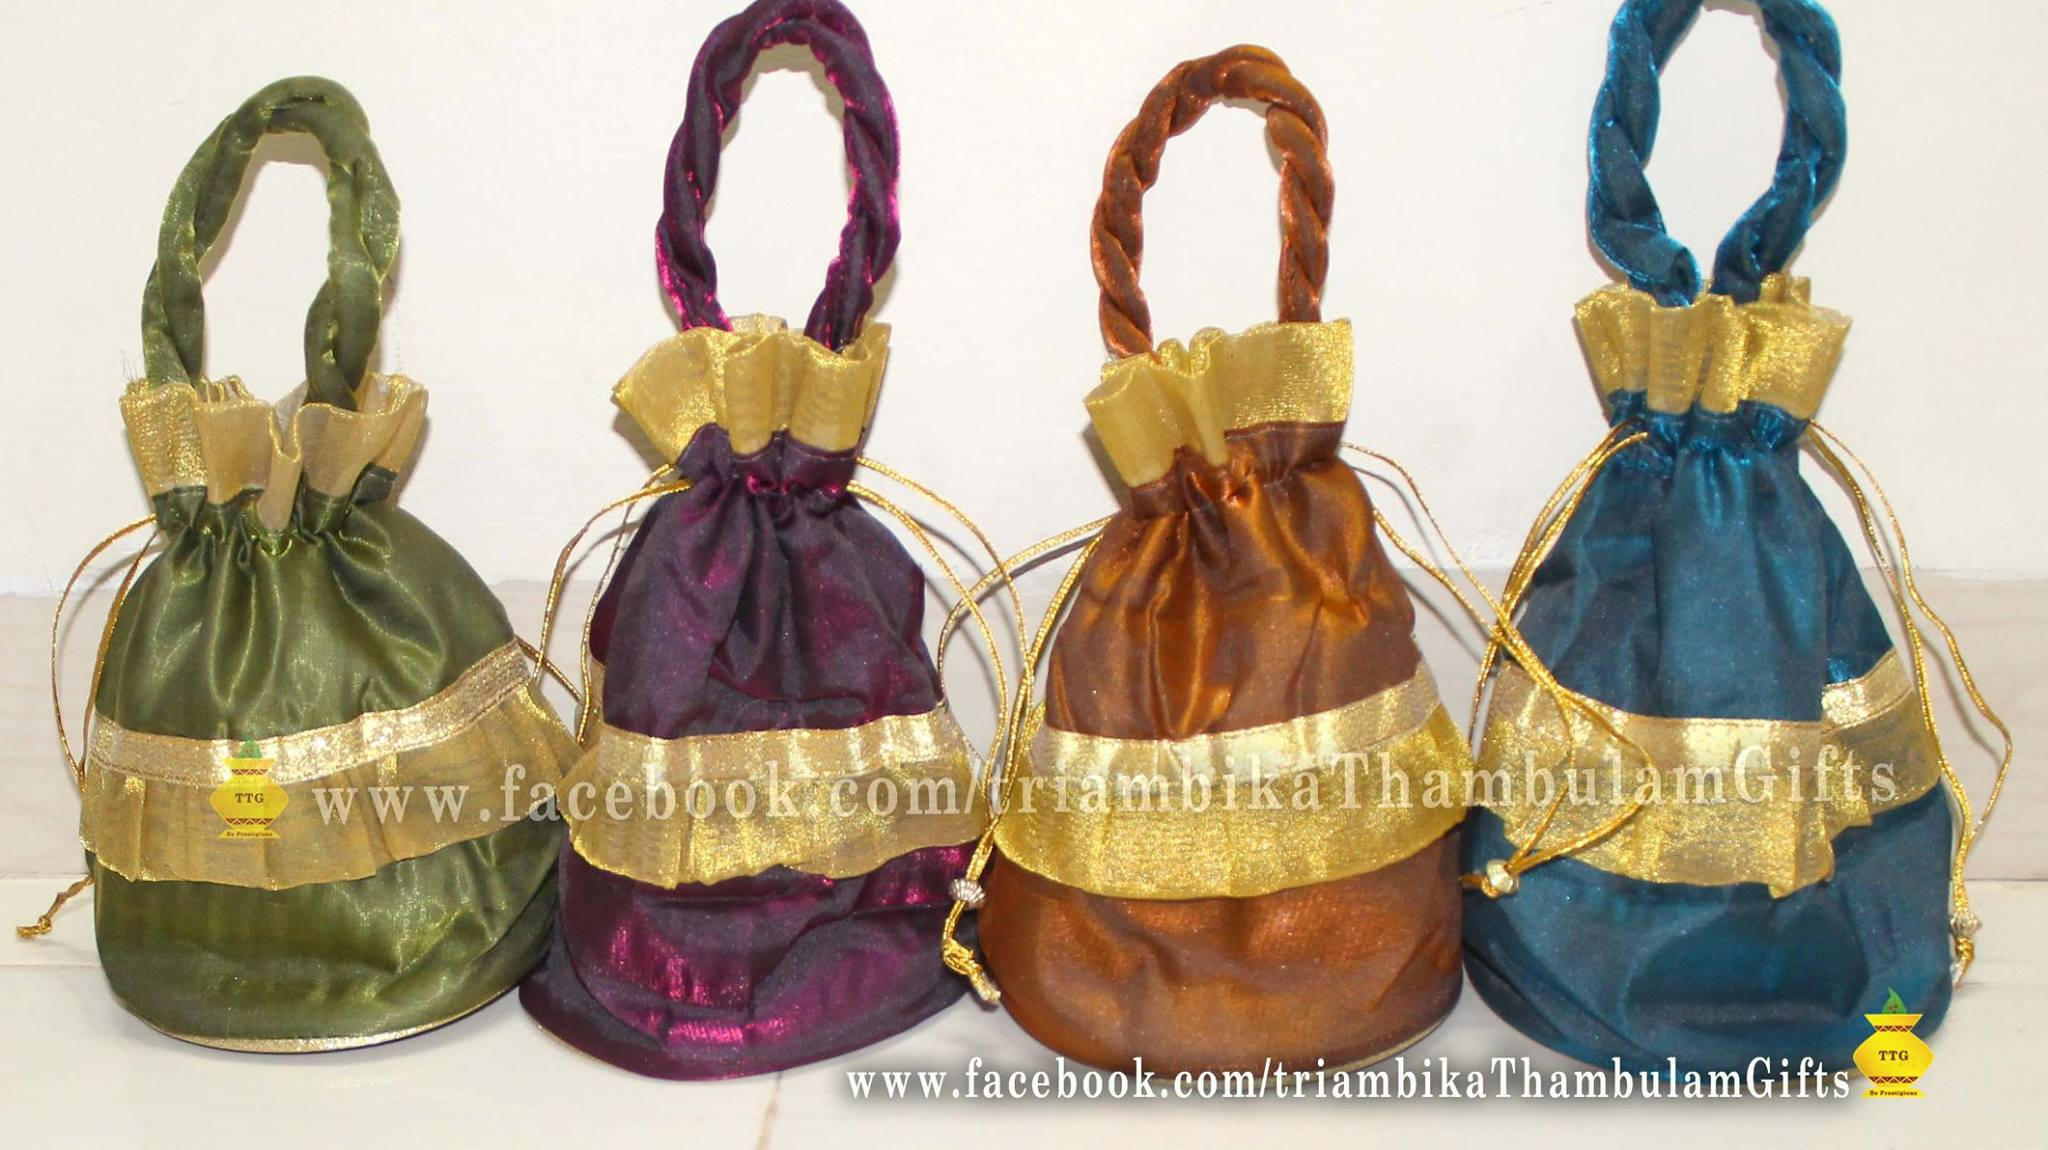 Wedding Return Gifts For Friends: Return Gifts Shop In Chennai